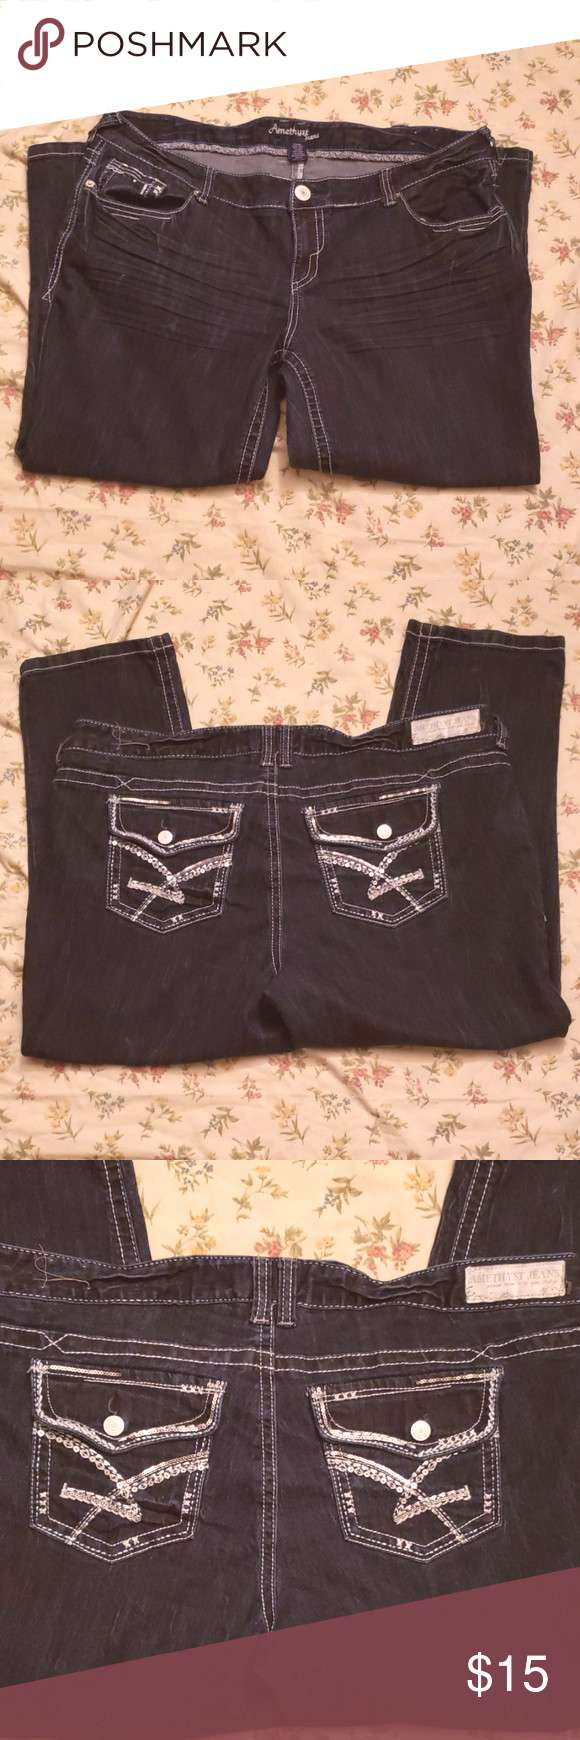 AMETHYST SERIES 31 SHORT AND SWEET JEANS AMETHYST SERIES 31 SHORT AND SWEET JEAN'S SIZE 20 25